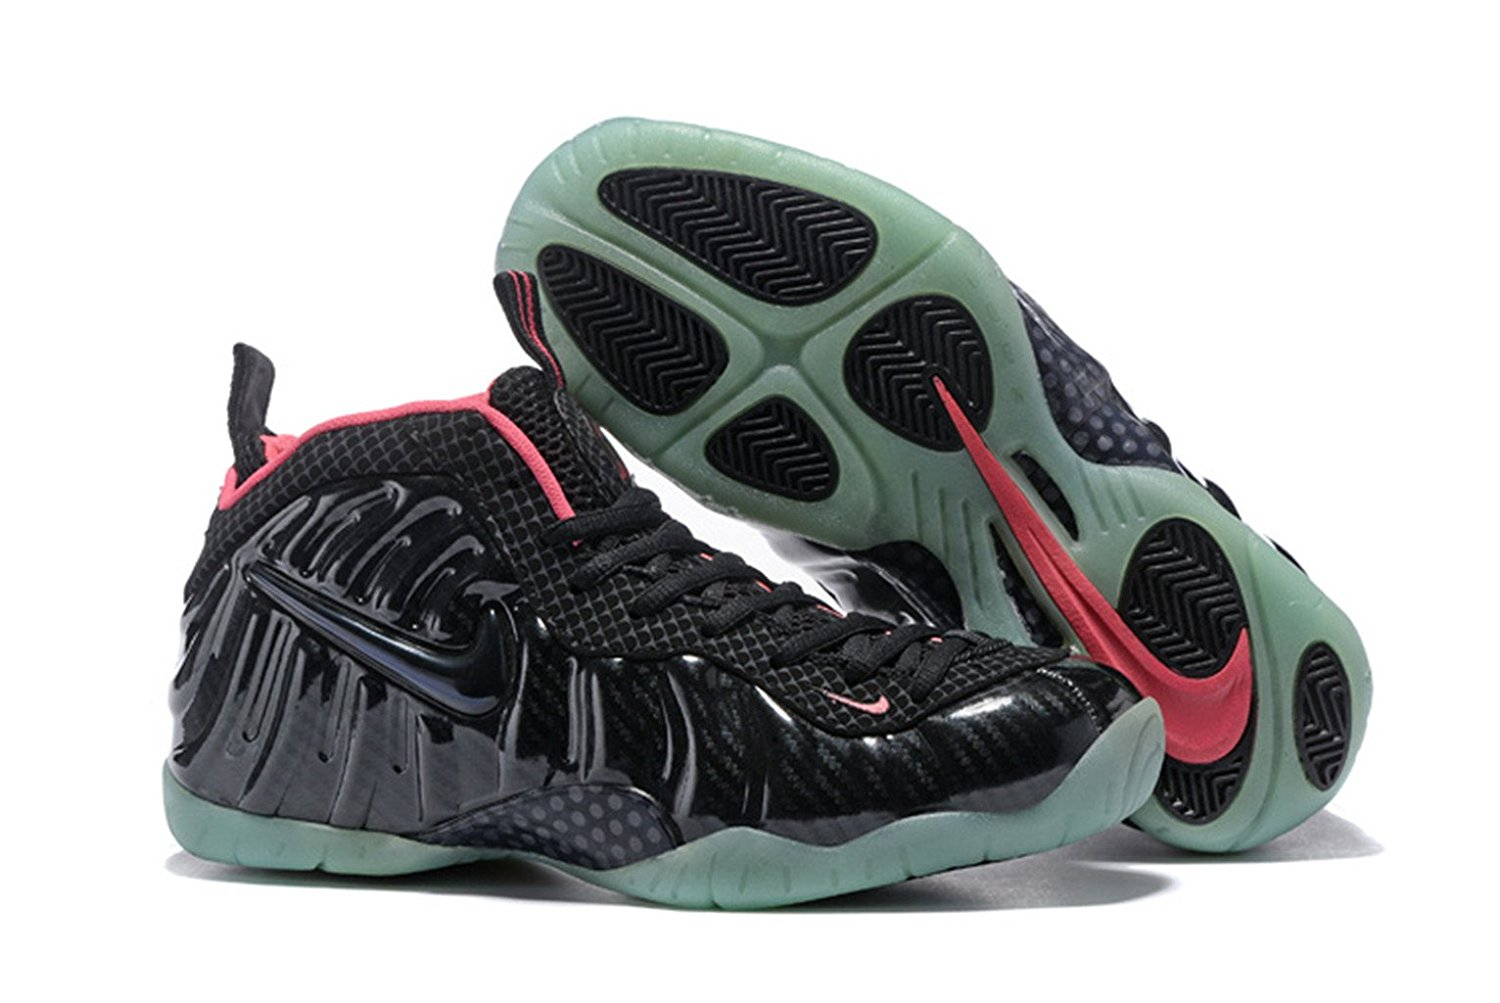 detailed look 46041 728c9 Get Quotations · Nike Air Foamposite Pro Yeezy